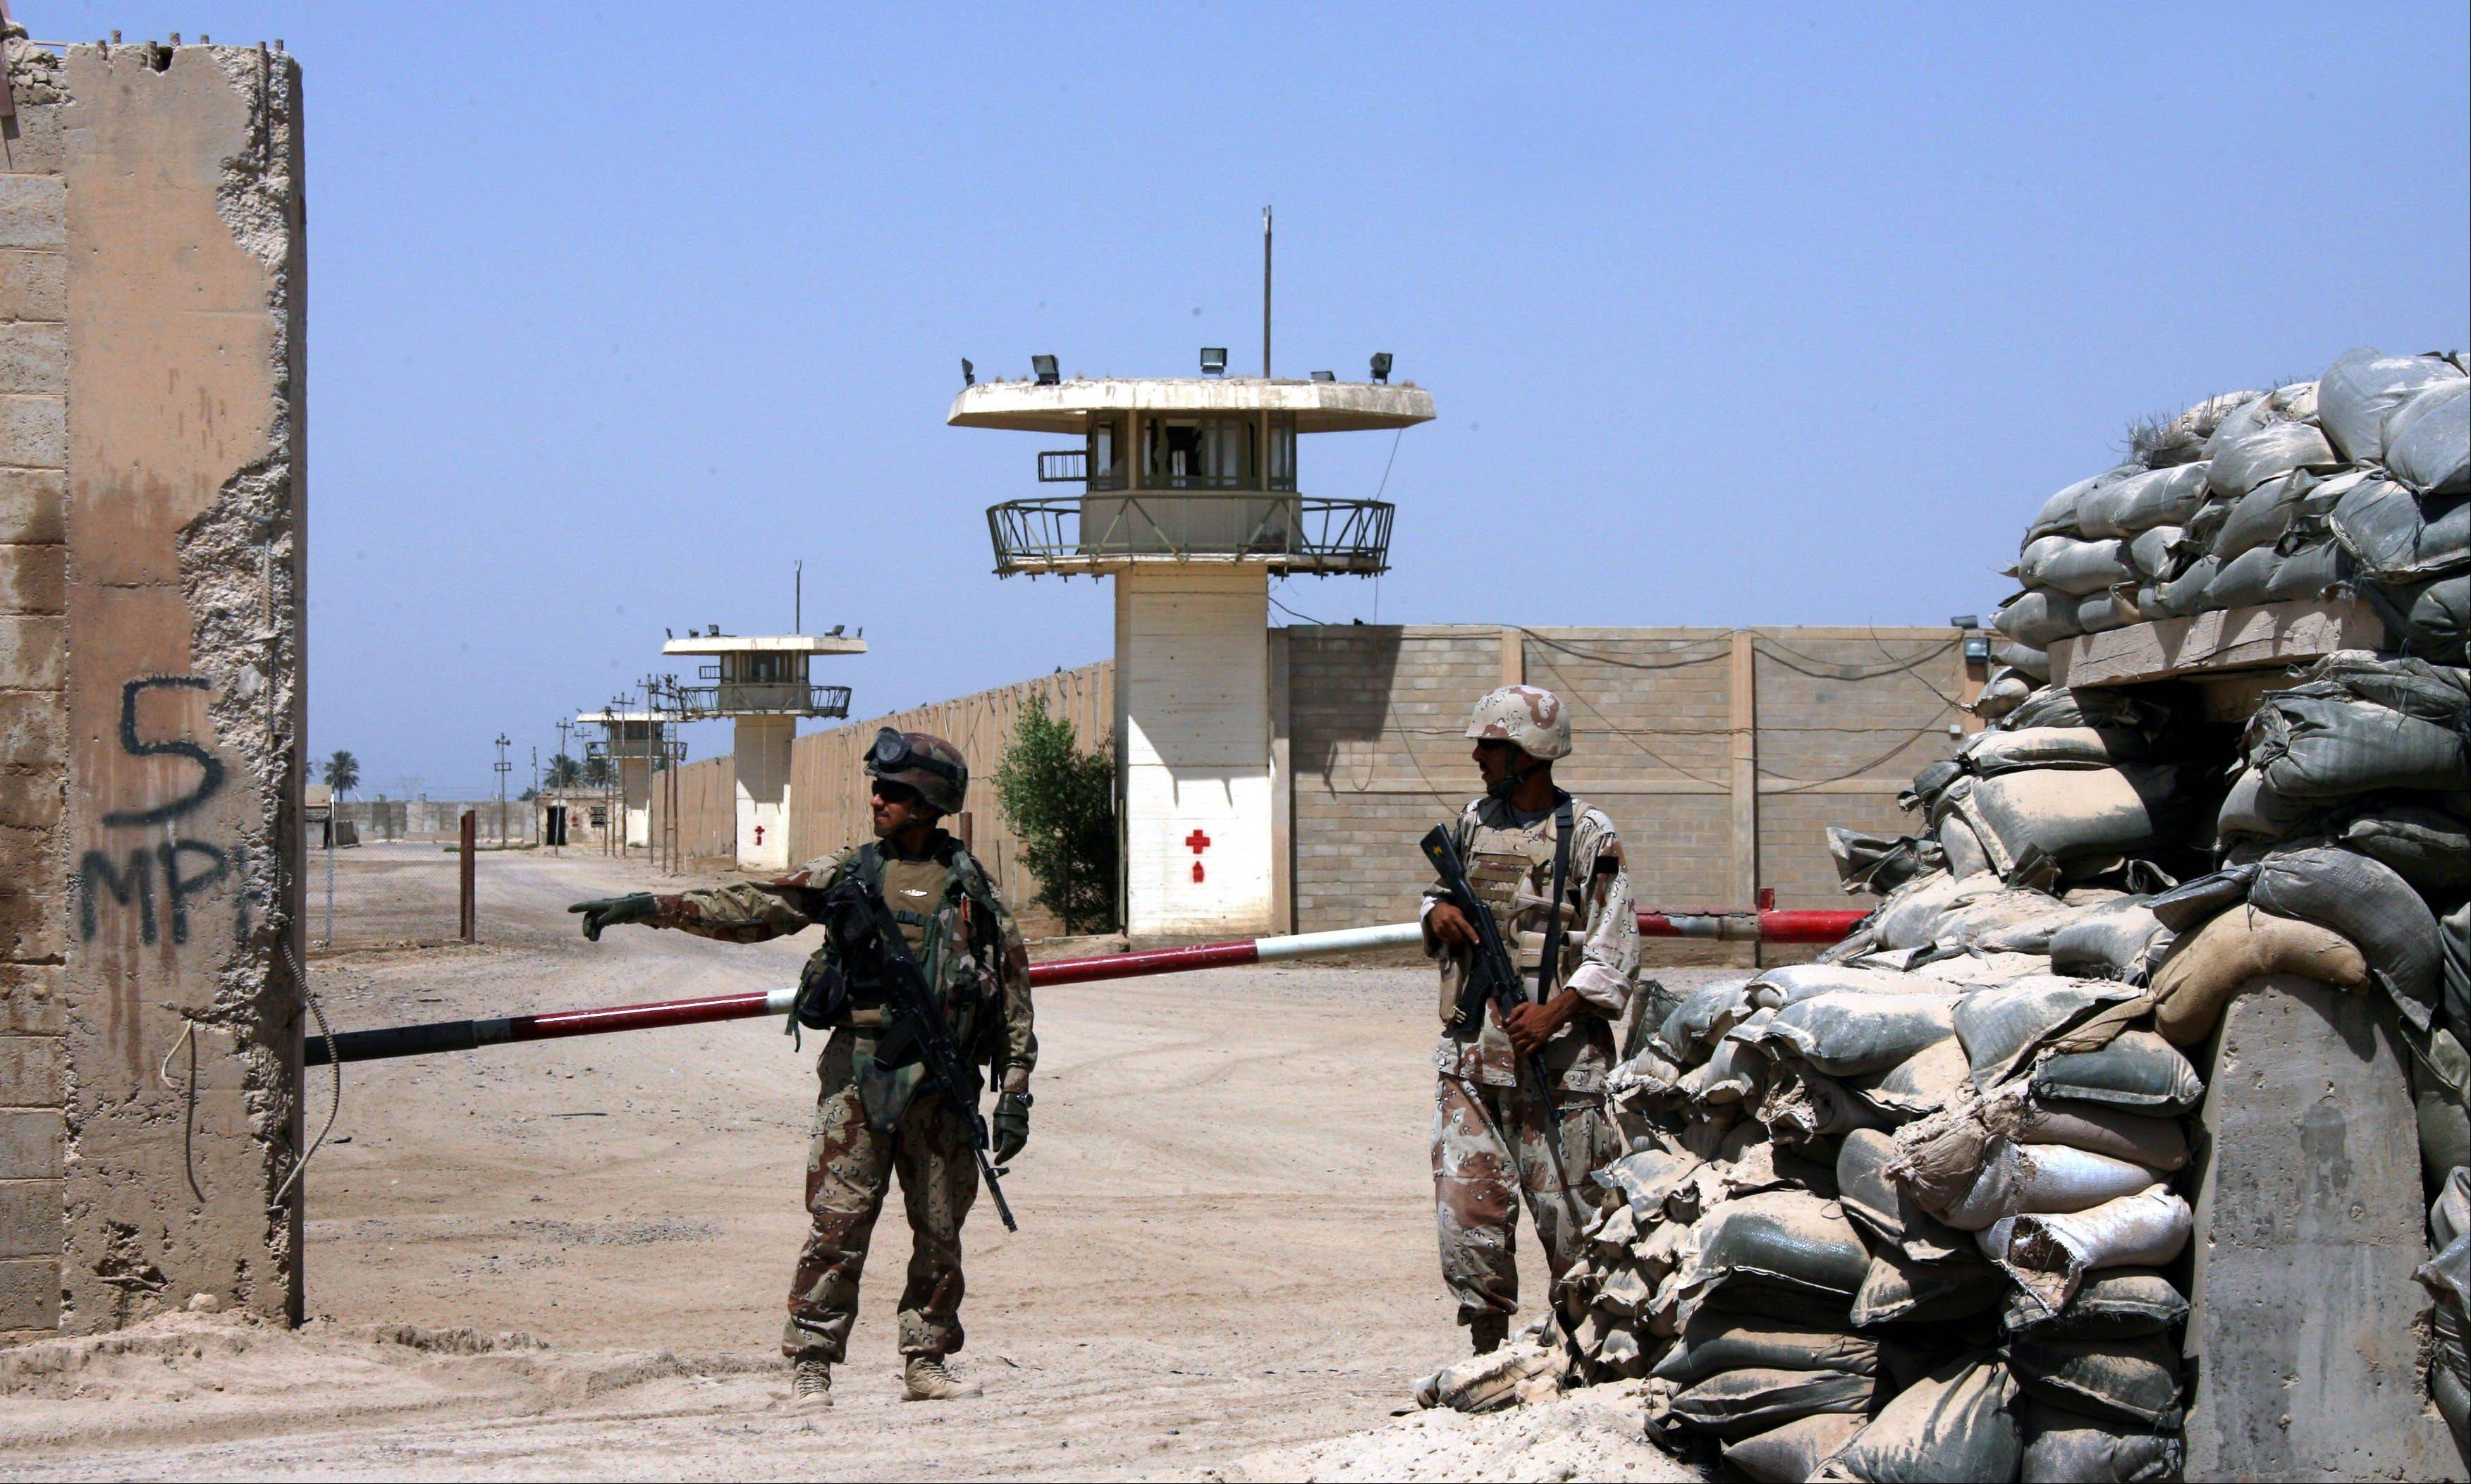 Iraqi army soldiers stand guard at the Abu Ghraib prison, after taking over from U.S. soldiers, on the outskirts of Baghdad in this file photo from 2006.